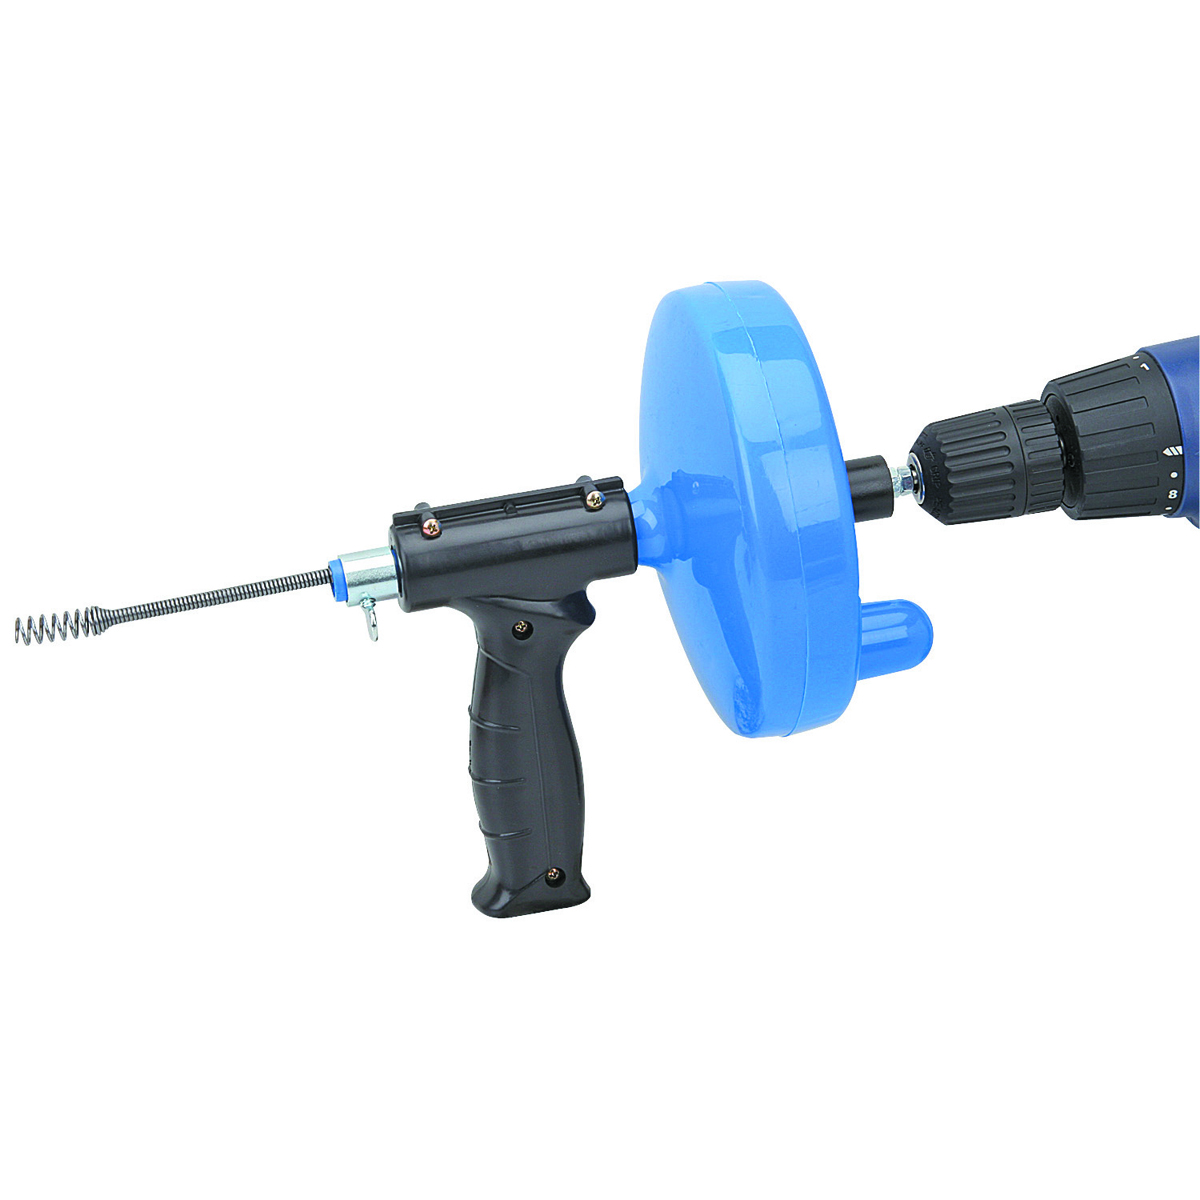 25 Ft Drain Cleaner With Drill Attachment